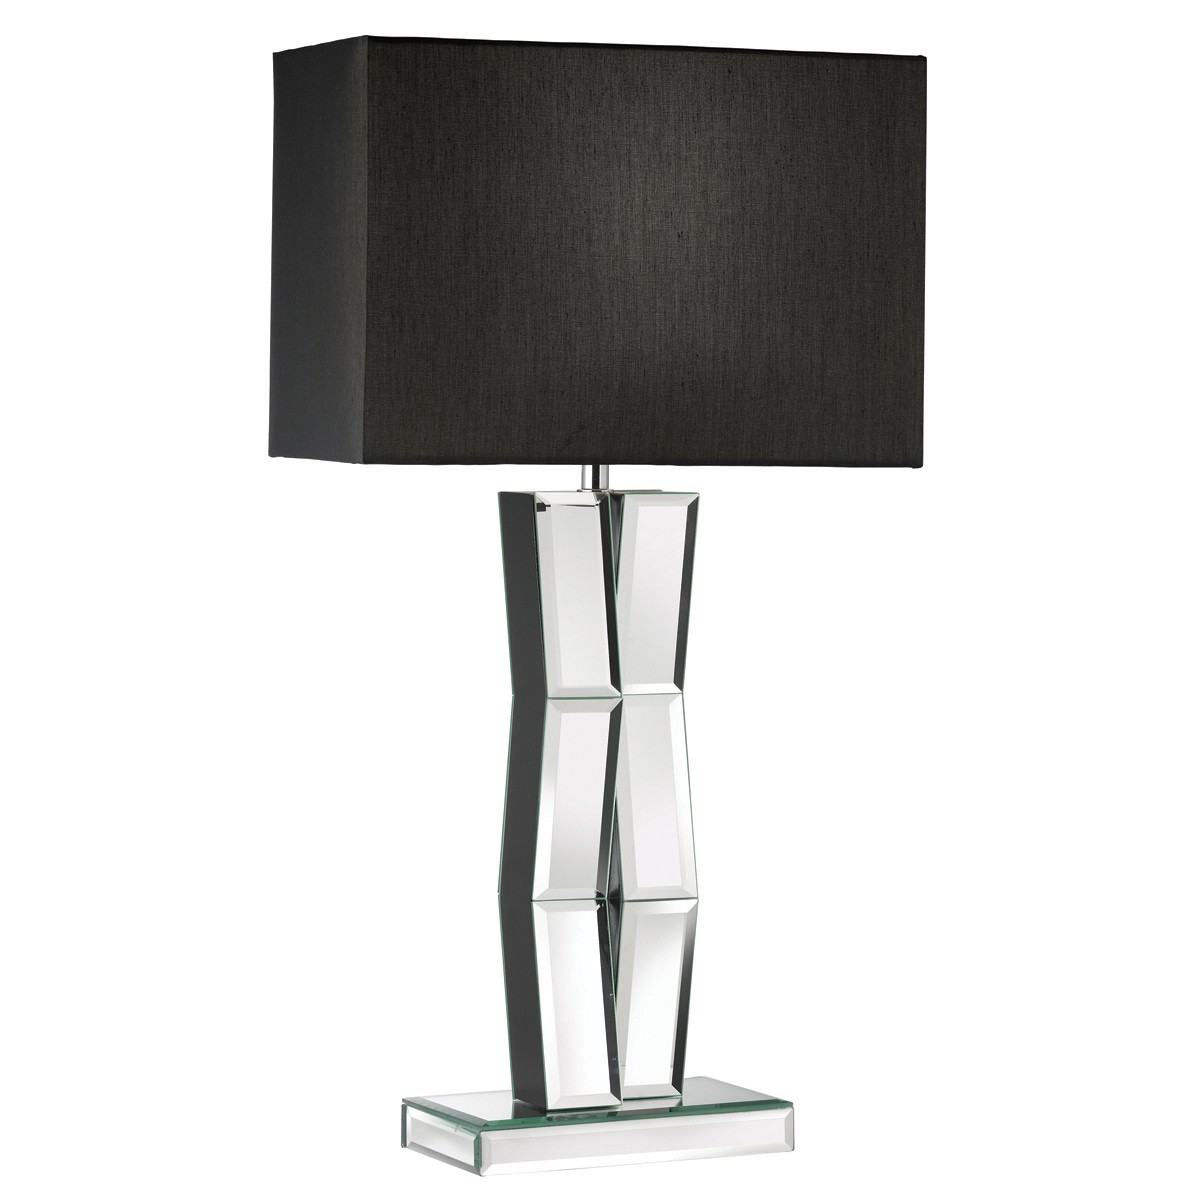 Table lamps product categories stanways stoves and lights mirrored table lamp with black oblong faux silk shade 5110bk geotapseo Images